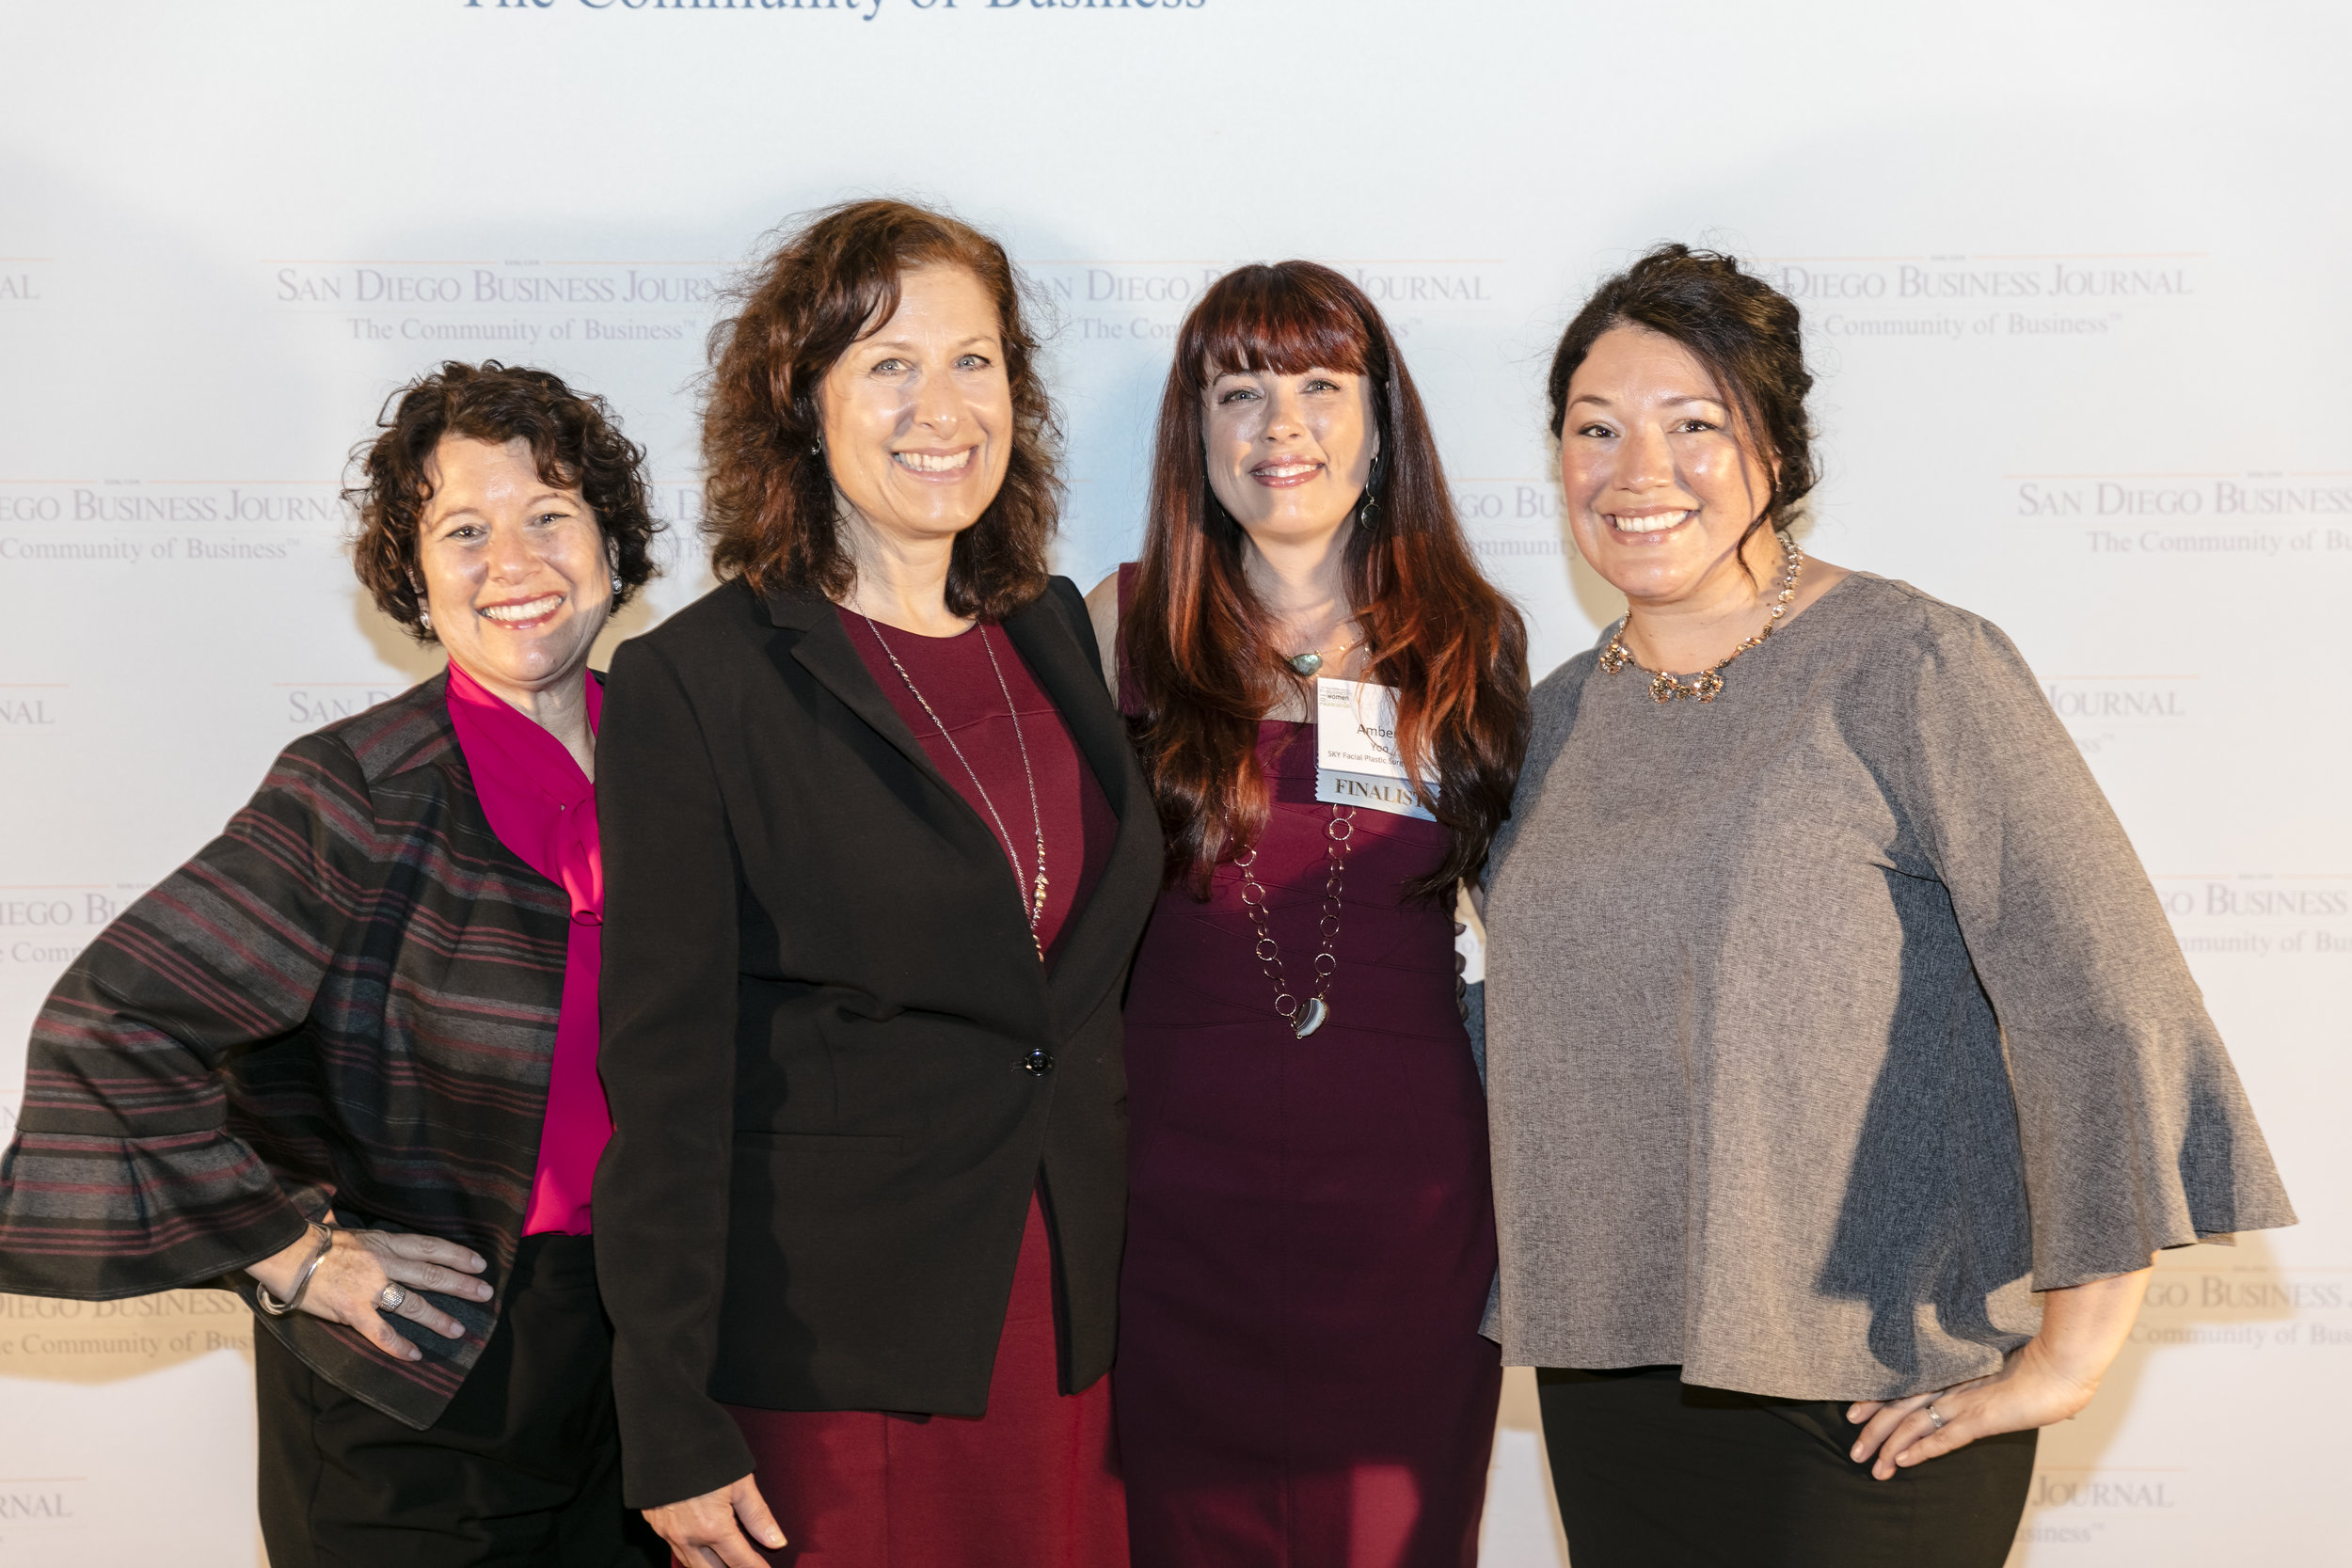 Pictured from left to right: (1) Laurie Coskey, CEO of United Way (2) Lisa Kalal, VP of Philanthropy for United Way (3)  Amber Yoo, Finalist and SKY's VP  (4) Adina Veen, Community Engagement Manager of United Way | Photo by Bob Thompson ©2017